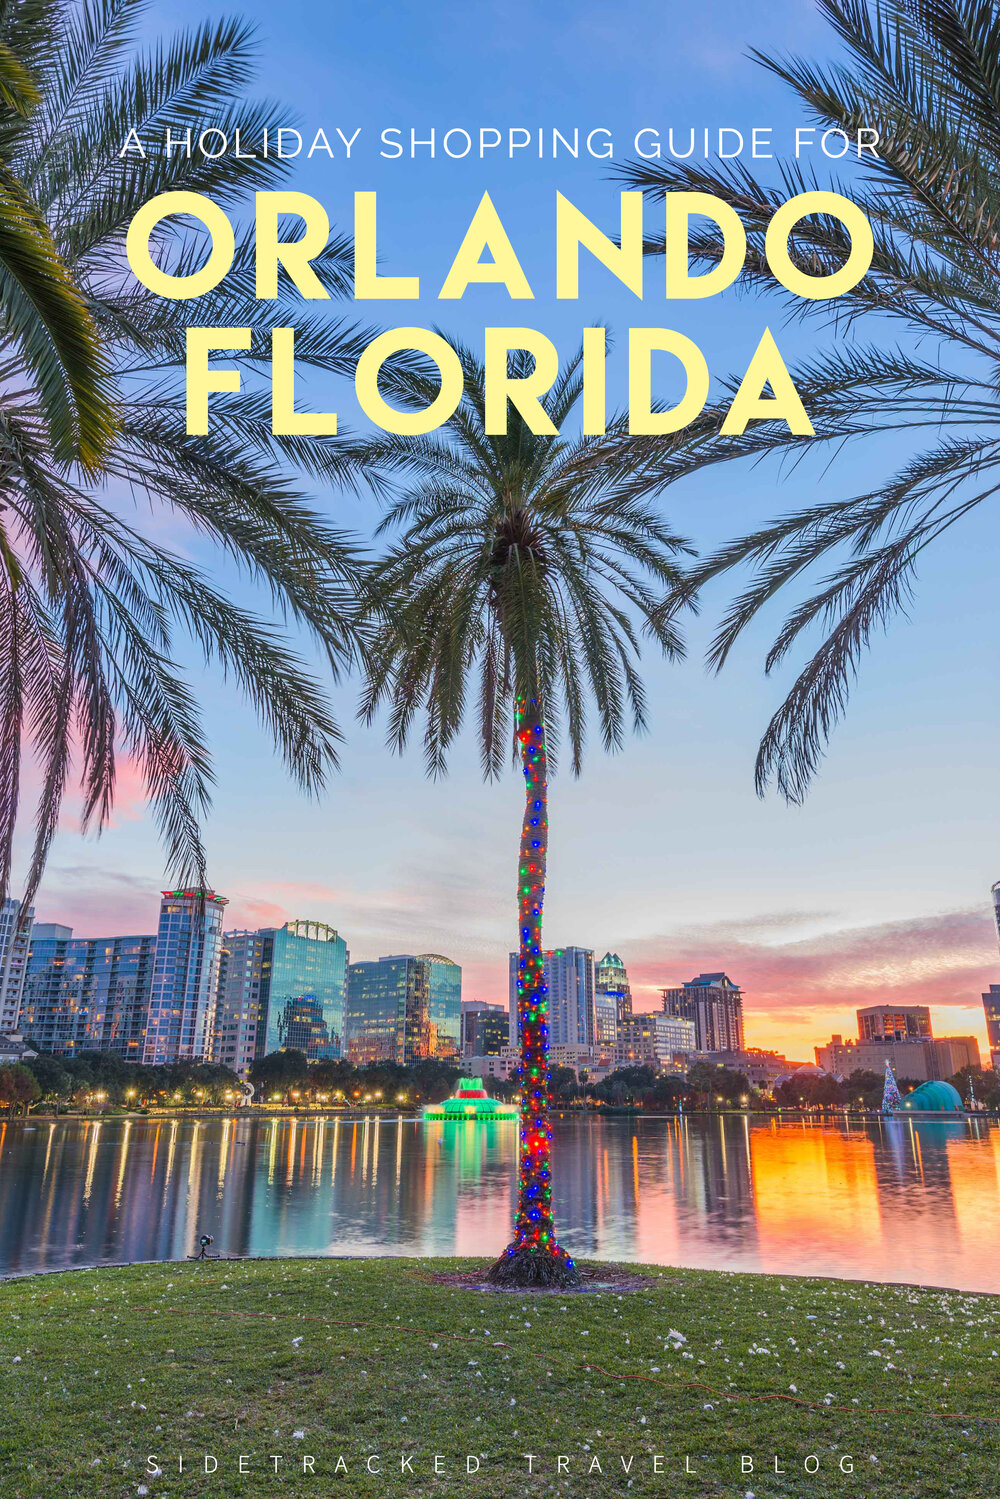 Orlando is one of Floridas most popular destinations and an extremely sought-after spot to visit during the Christmas season, not only because of its theme parks and resorts but also for its huge shopping industry where you are able to find interesting discounts, especially close to Christmas Eve.